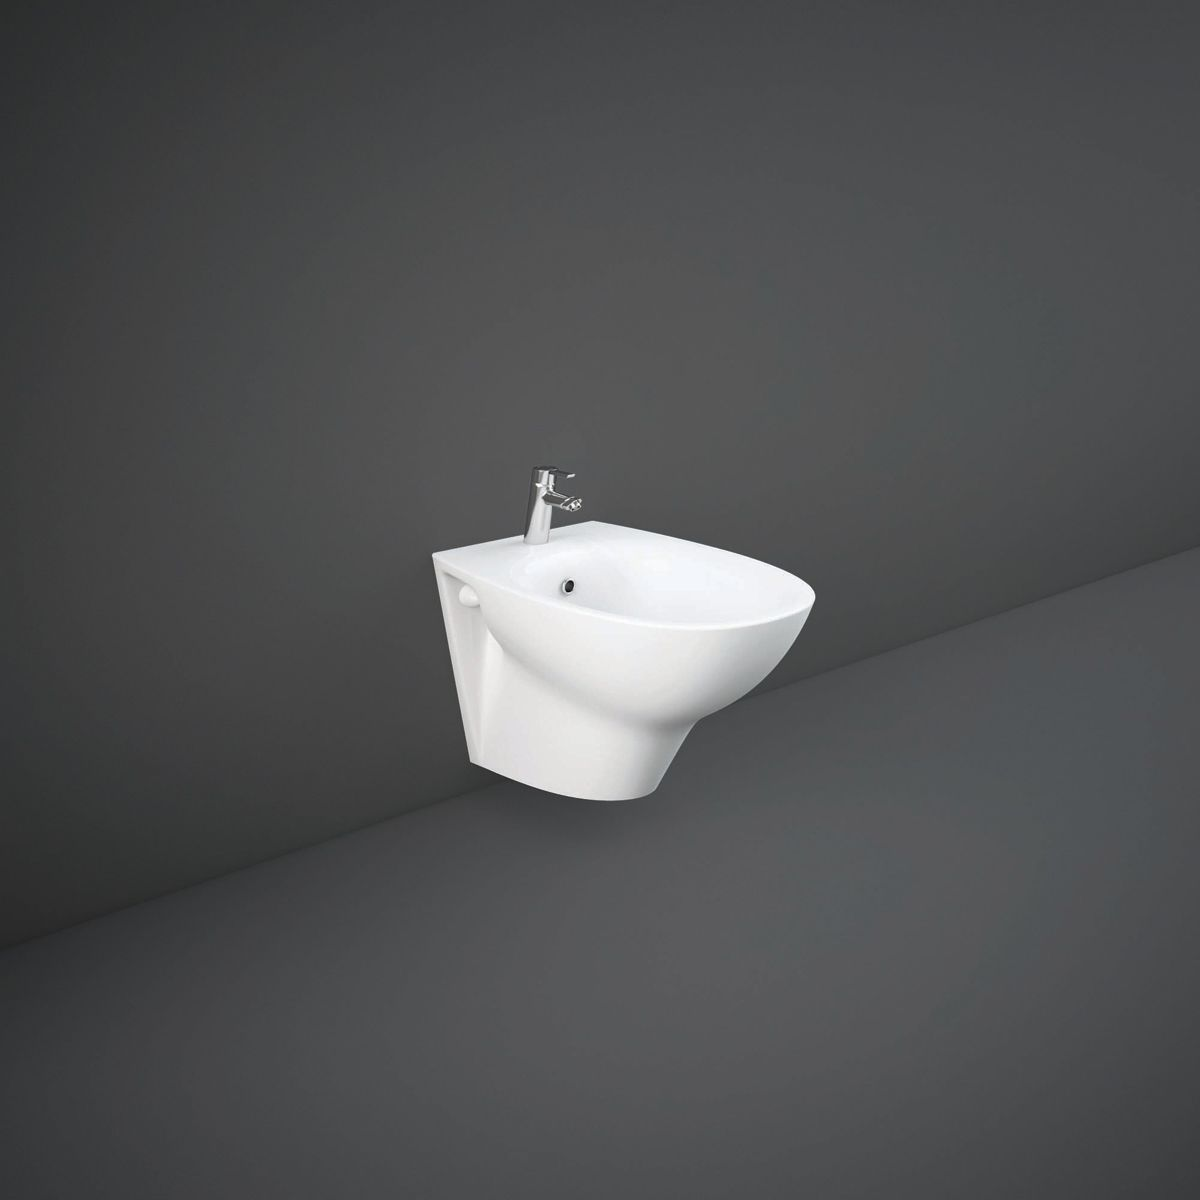 RAK Morning Wall Hung Bidet 520mm